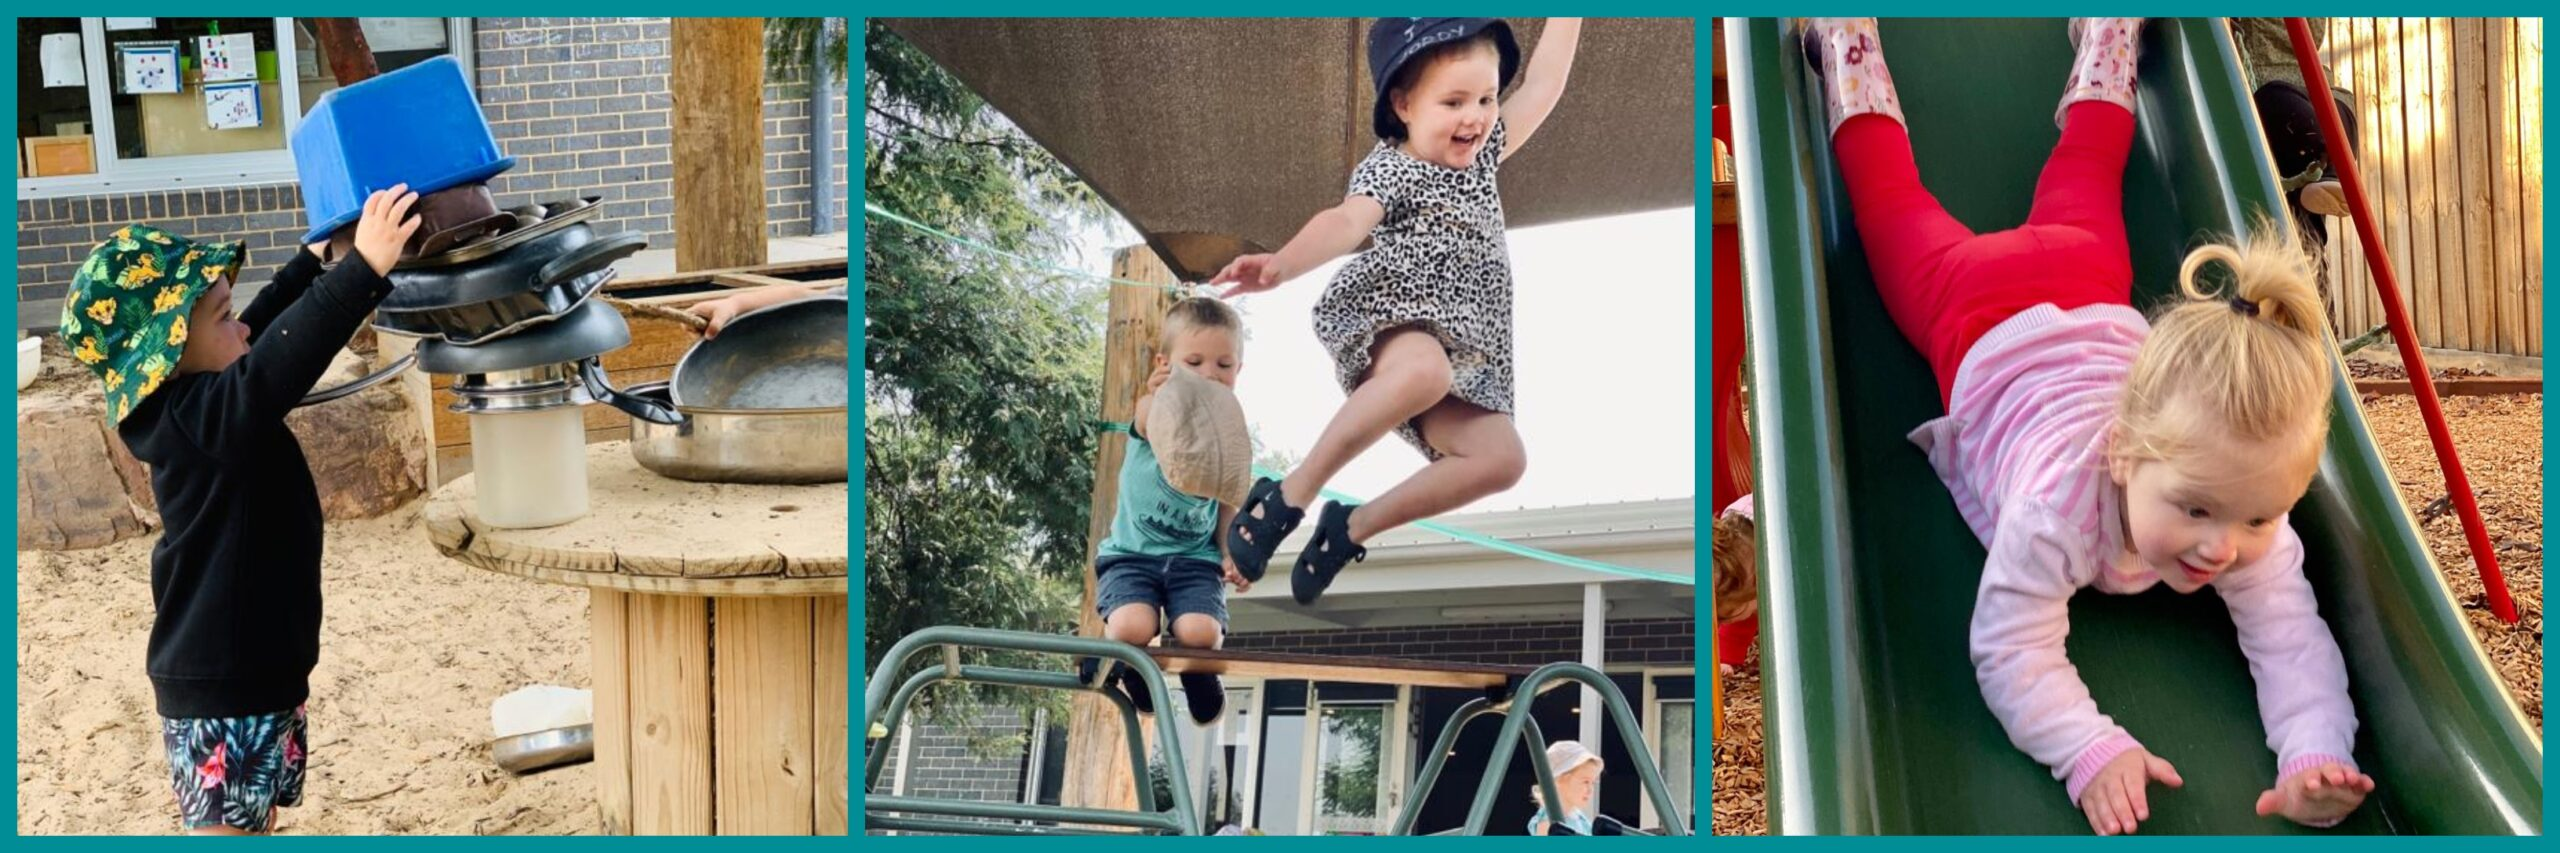 The Benefits of Risky Play in Early Years Education